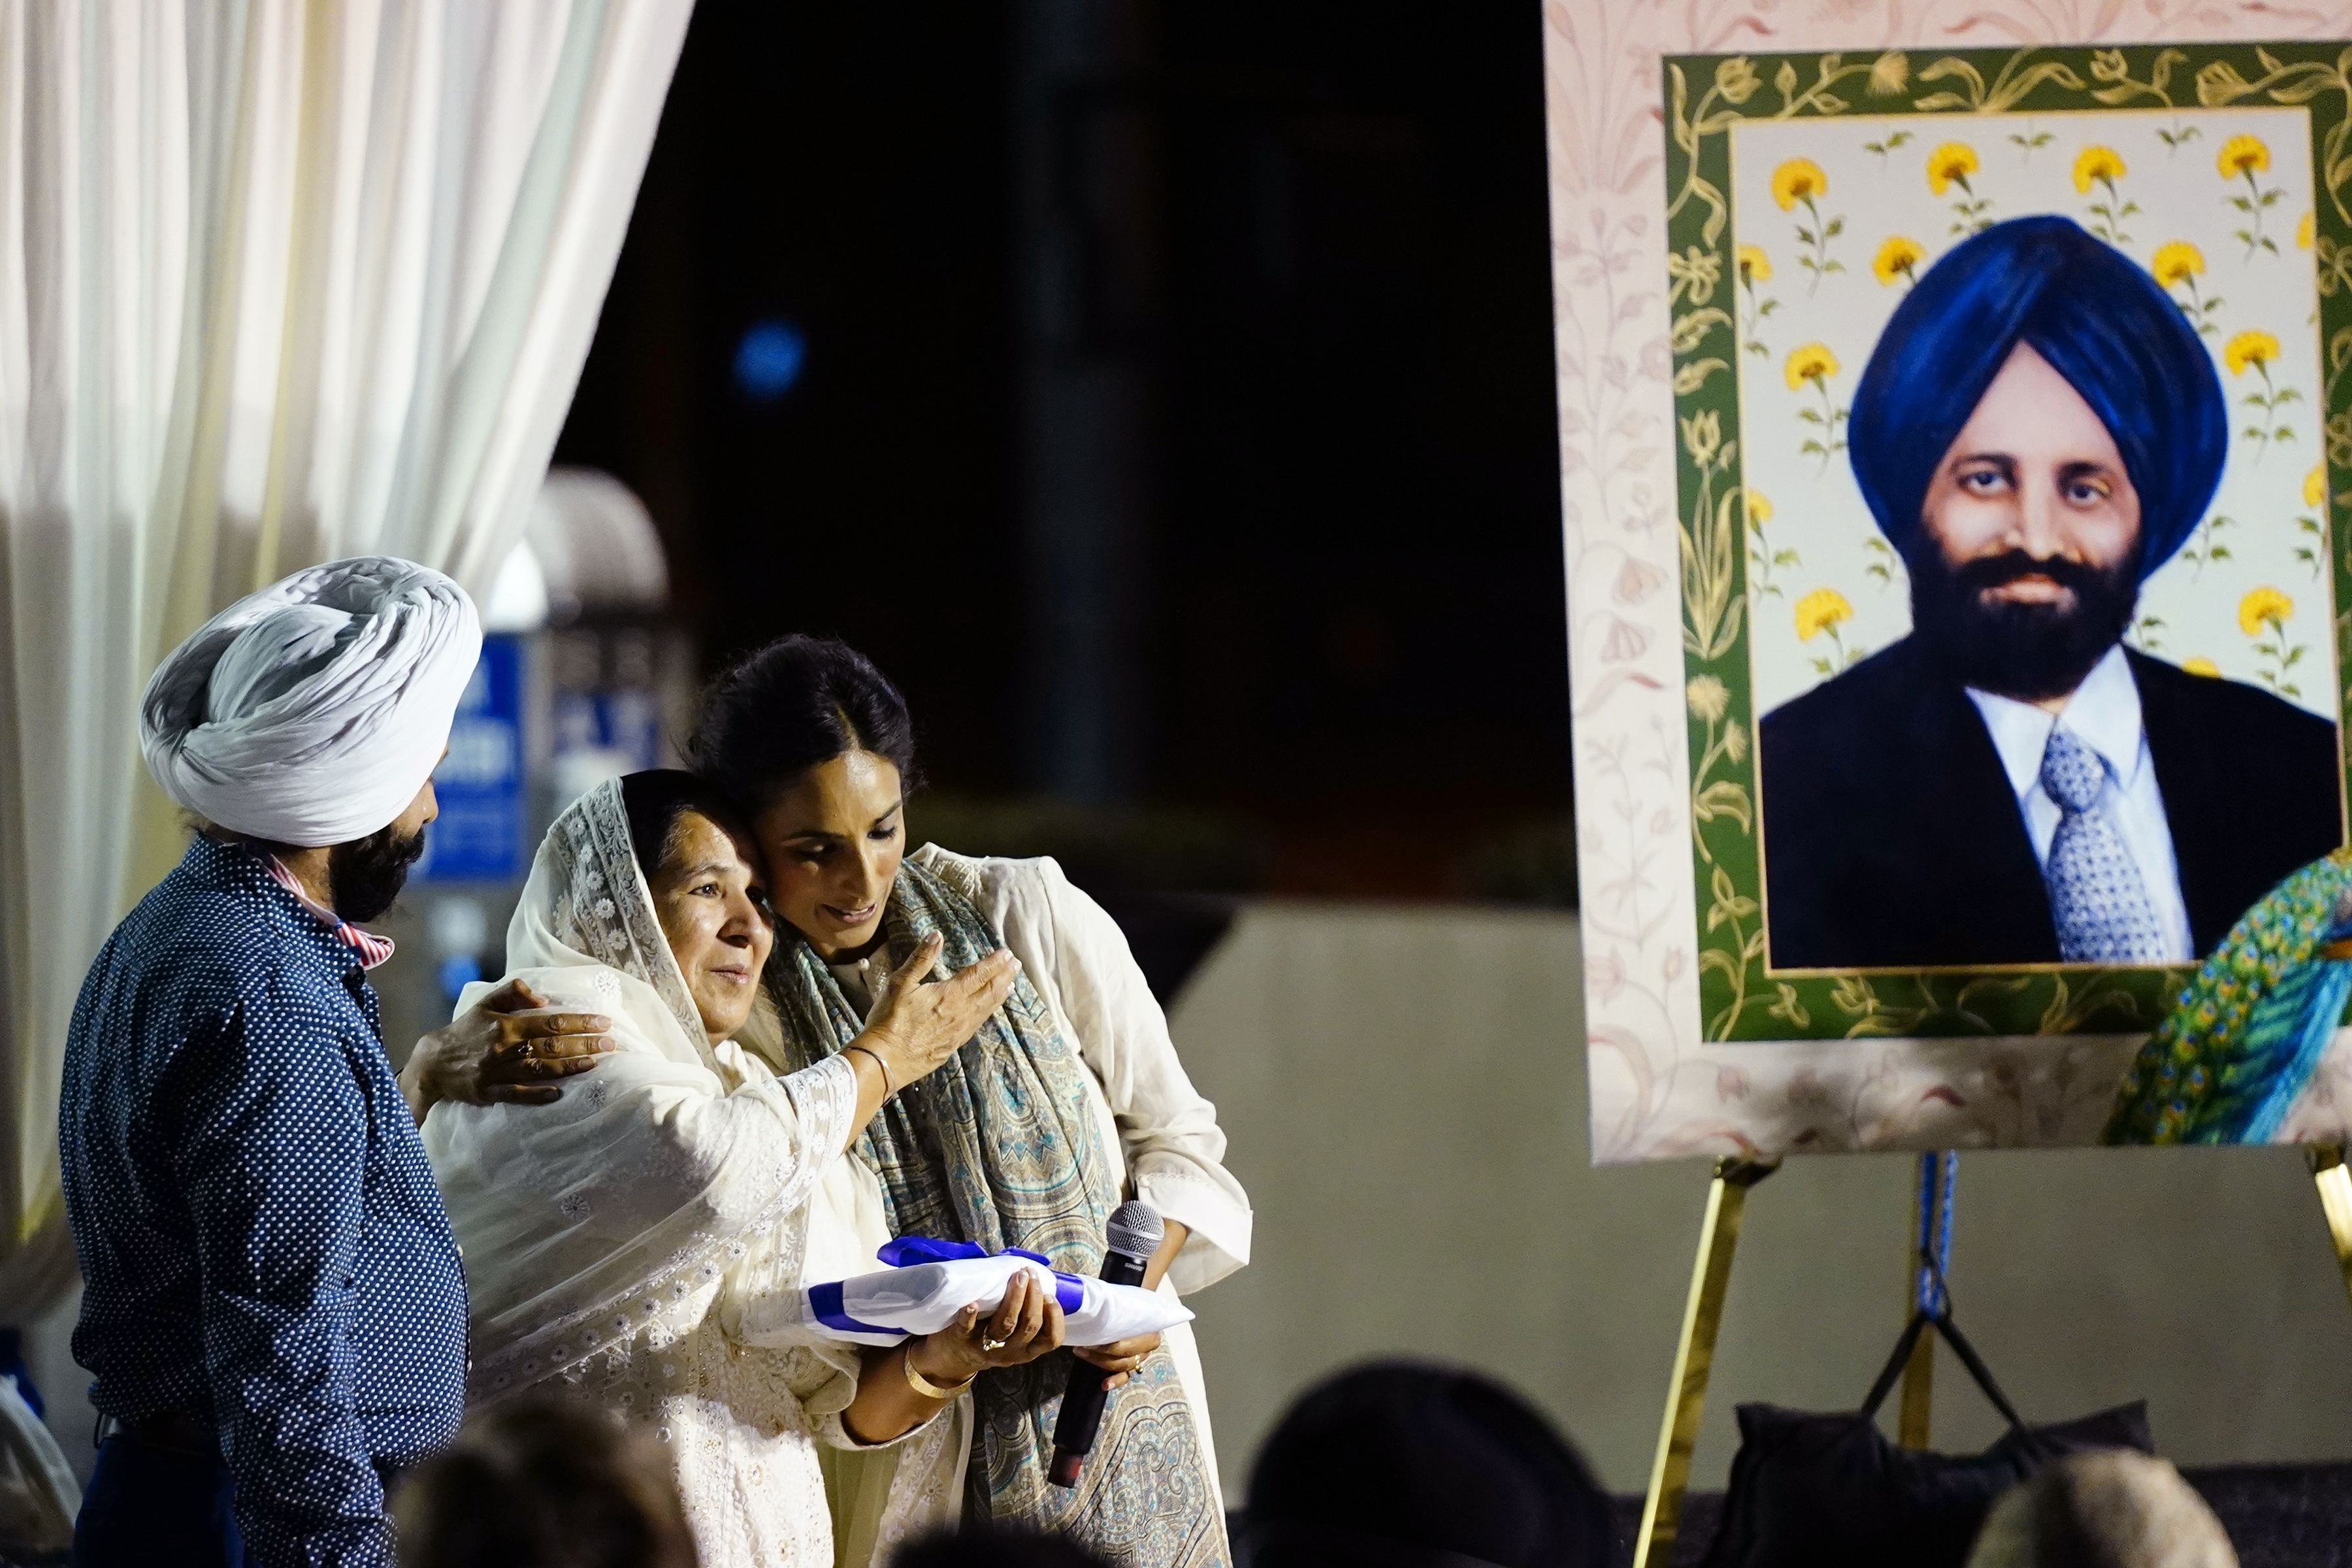 Valarie Kaur, right, of the Revolutionary Love Project, hugs Harjinder Kaur Sodhi, the widow of Balbir Singh Sodhi, middle, as Balbir's brother Rana Singh Sodhi, left, looks on at a memorial service on the 20th anniversary of the murder of Balbir Singh Sodhi Wednesday, Sept. 15, 2021, in Mesa, Ariz.